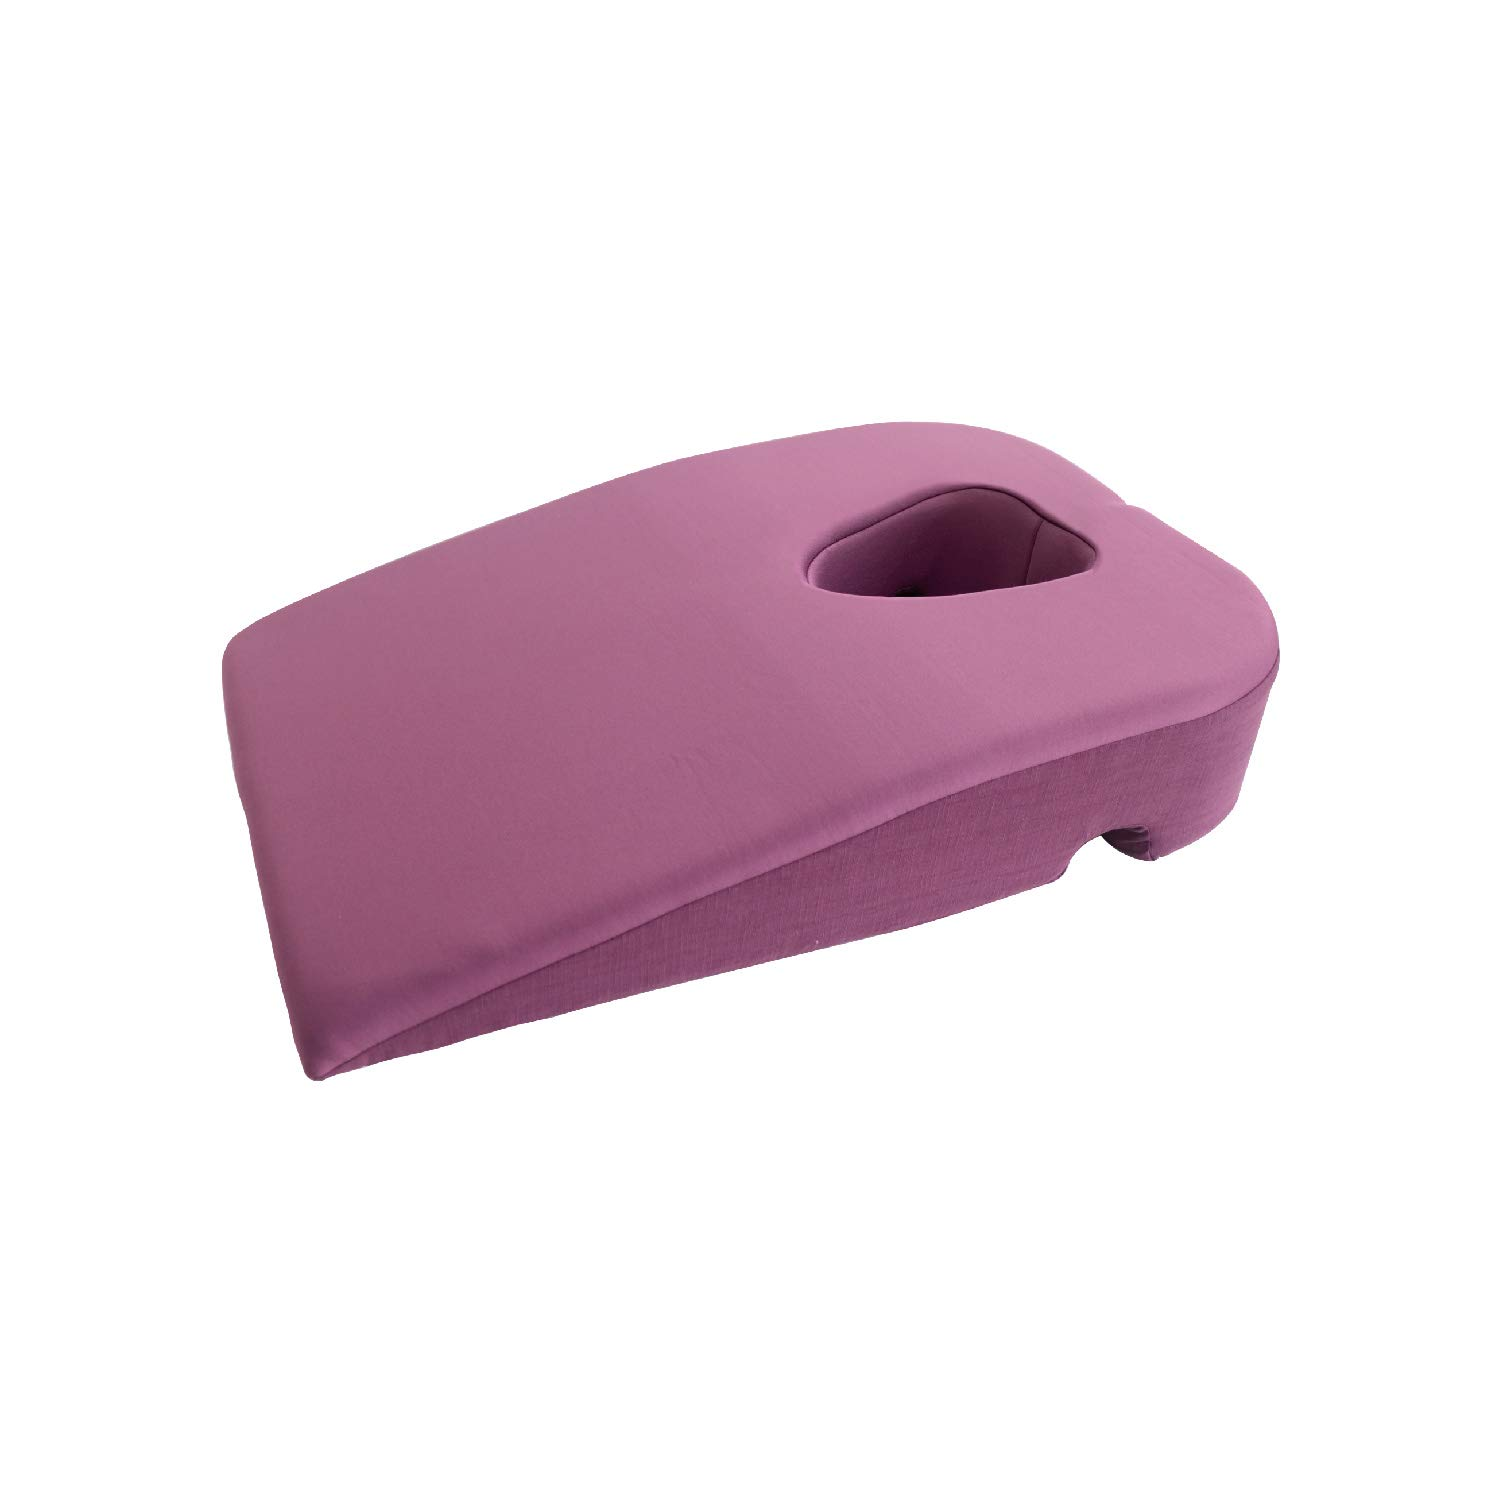 Prodigy TW Face down pillow, Massage pillow, Wedge Cushion, Home massage,stomach sleeping,Removable Cover